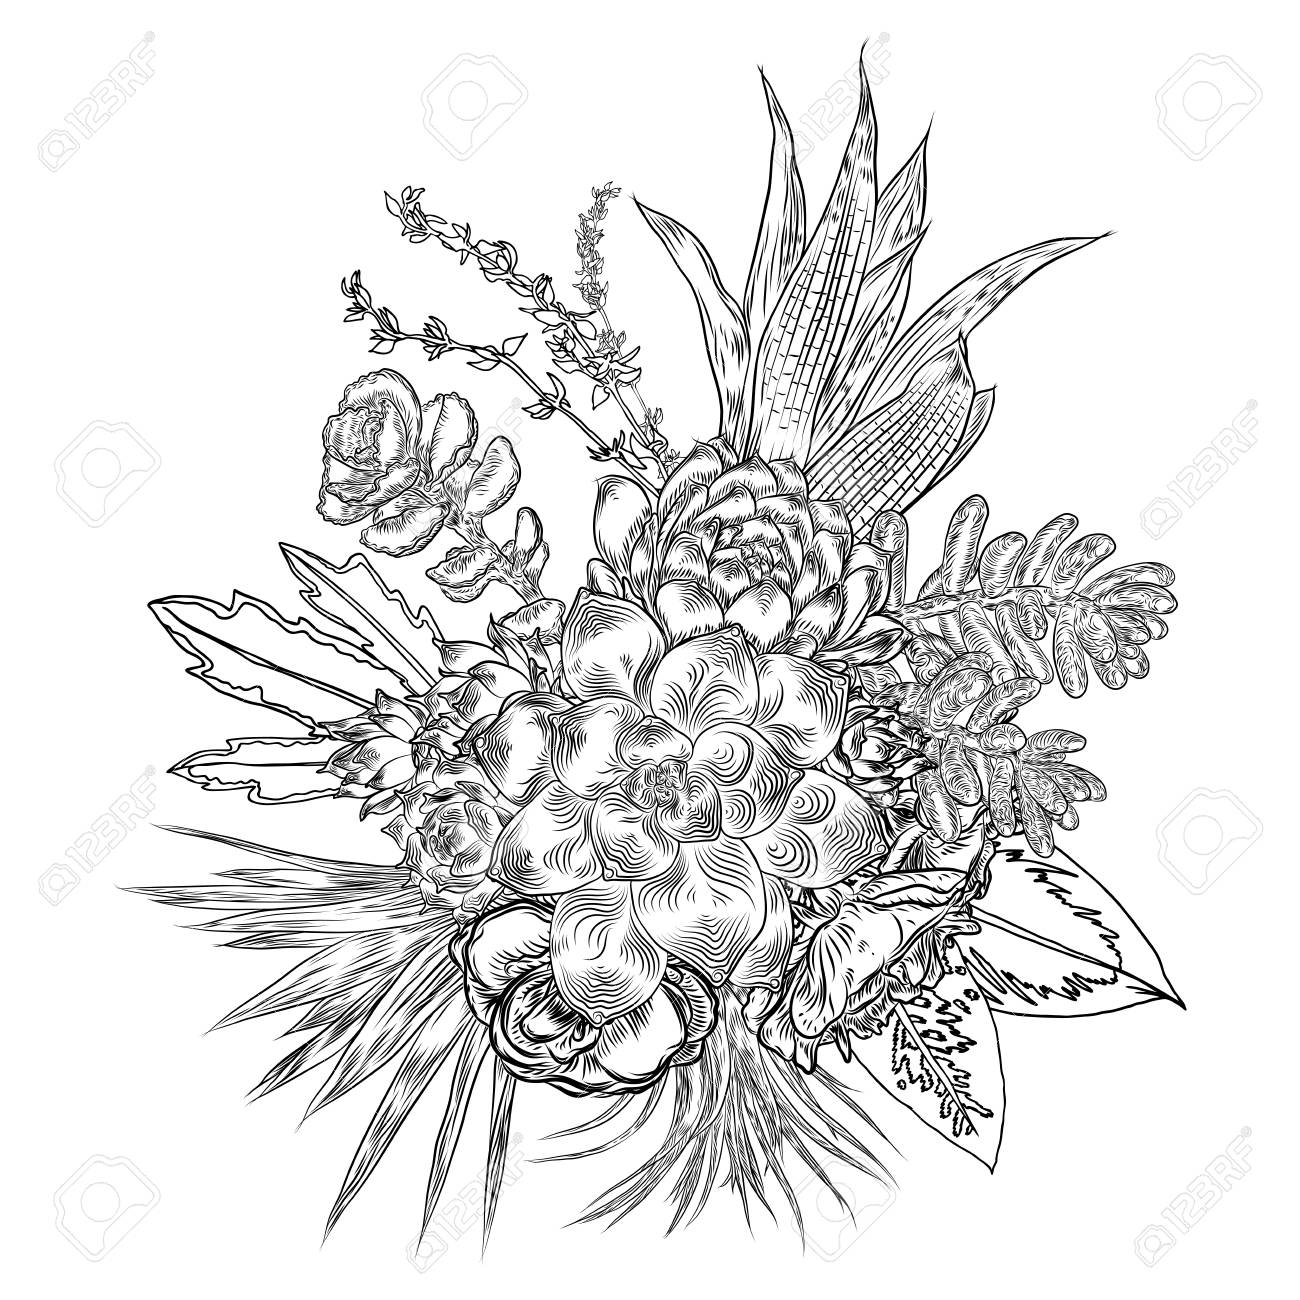 Composition Of Succulents Cactus Green Plants Botanical Drawing Royalty Free Cliparts Vectors And Stock Illustration Image 104013569